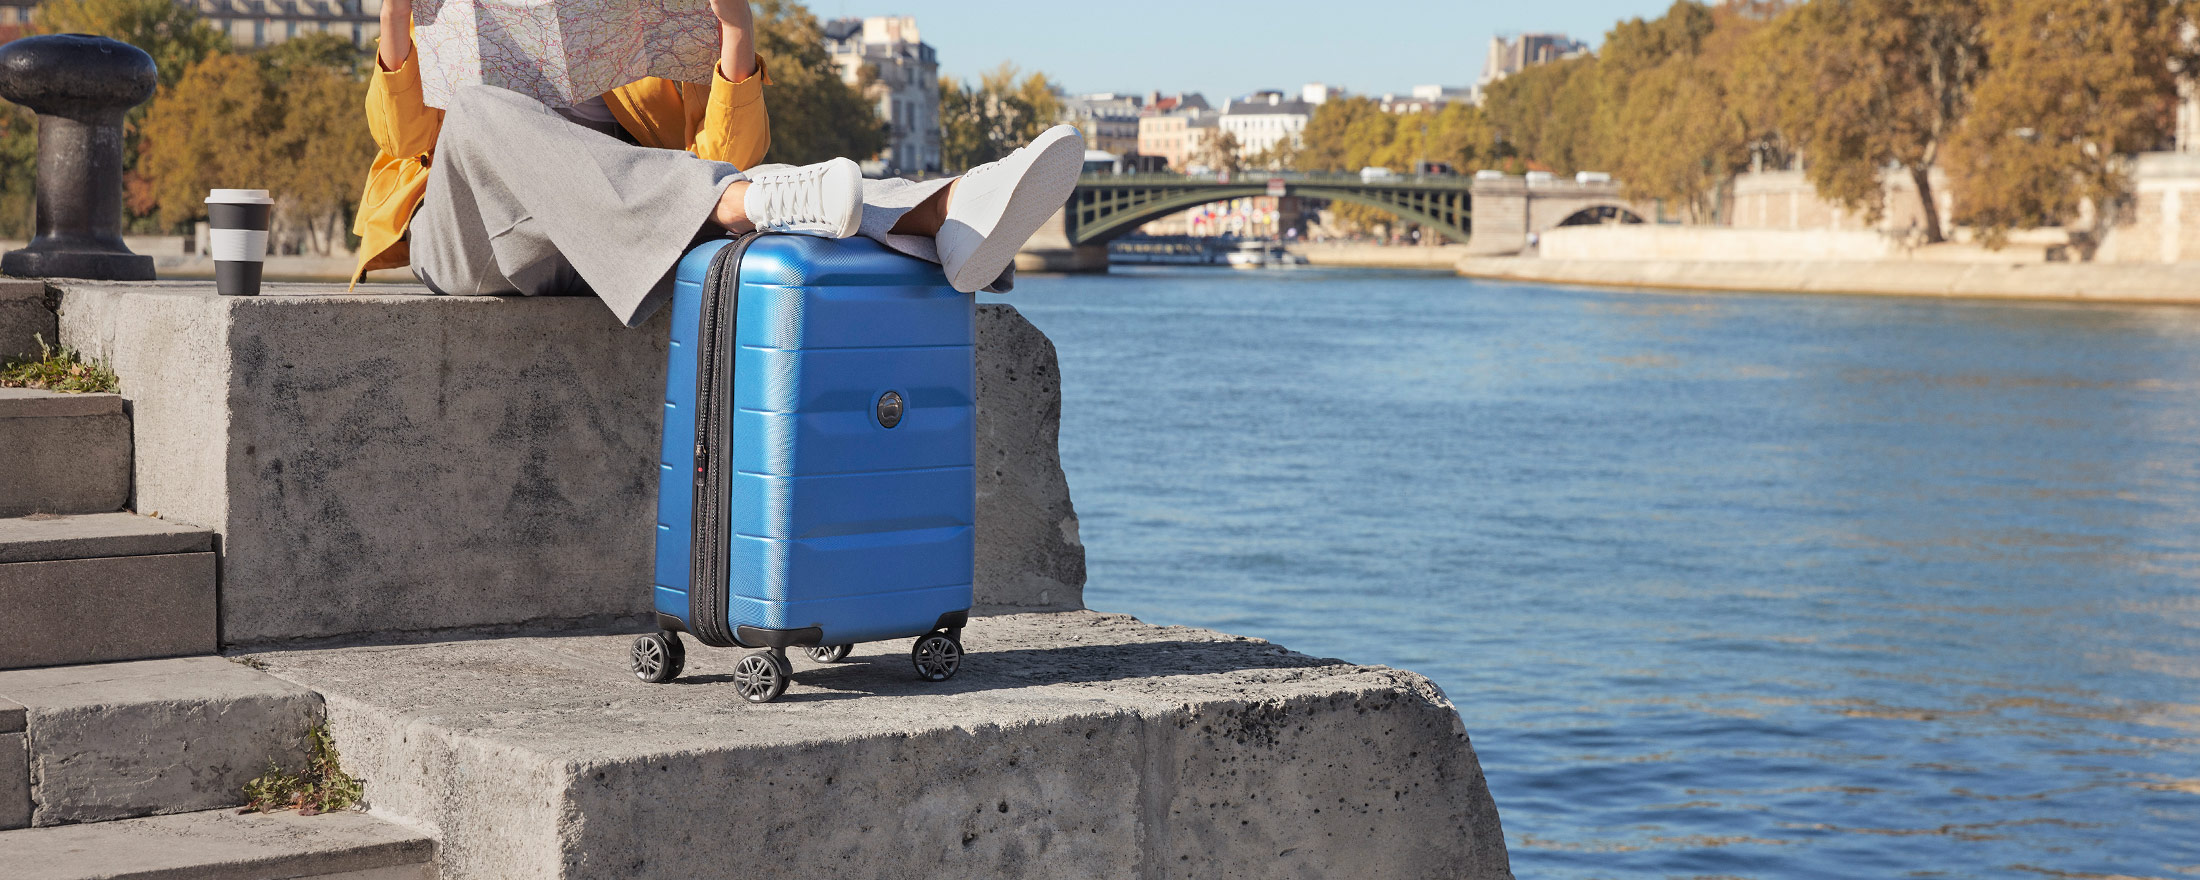 luggage and river